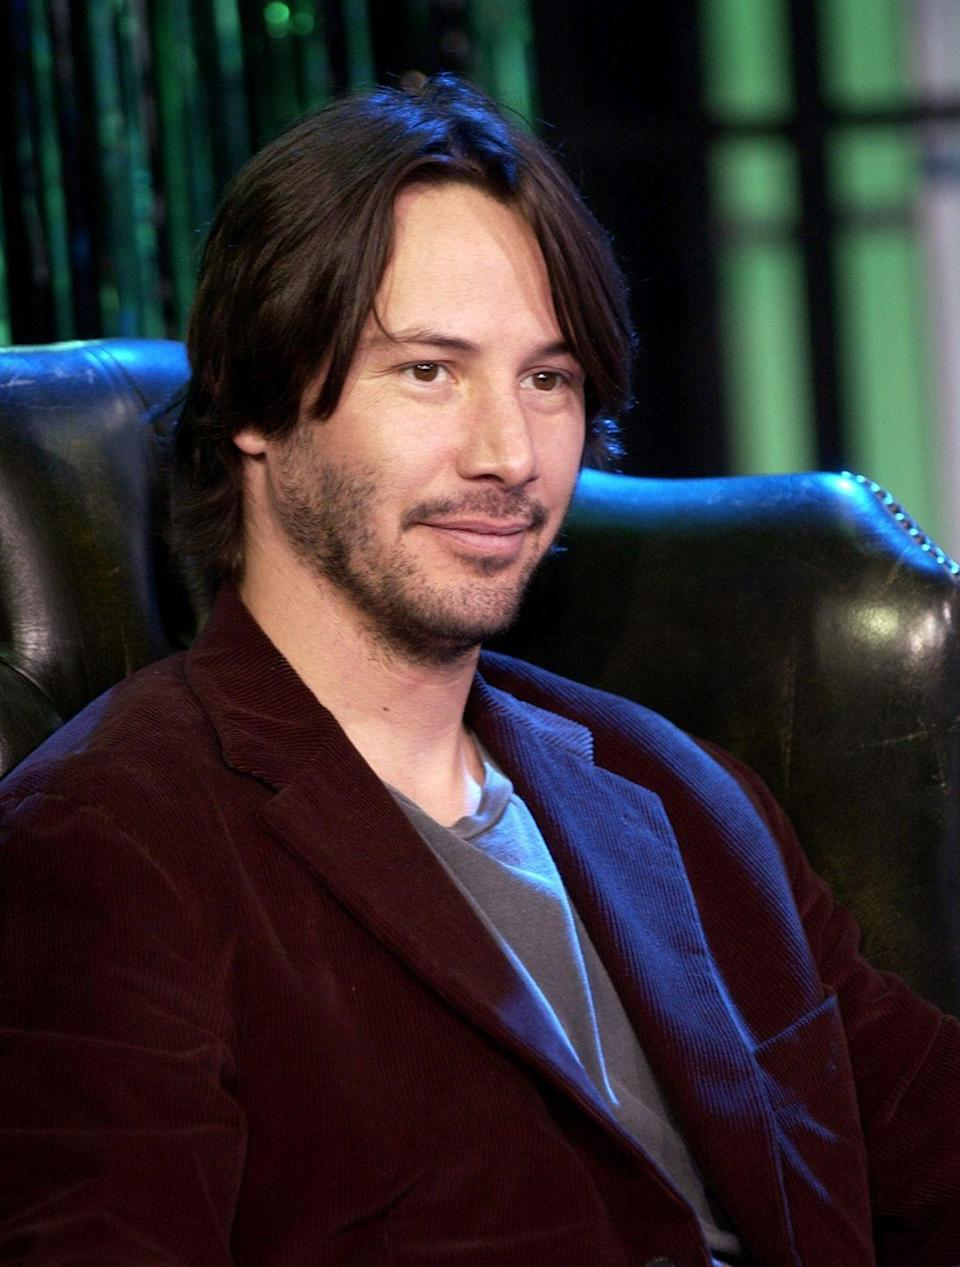 <p>KEANU BLINK TWICE IF YOU NEED HELP. </p>